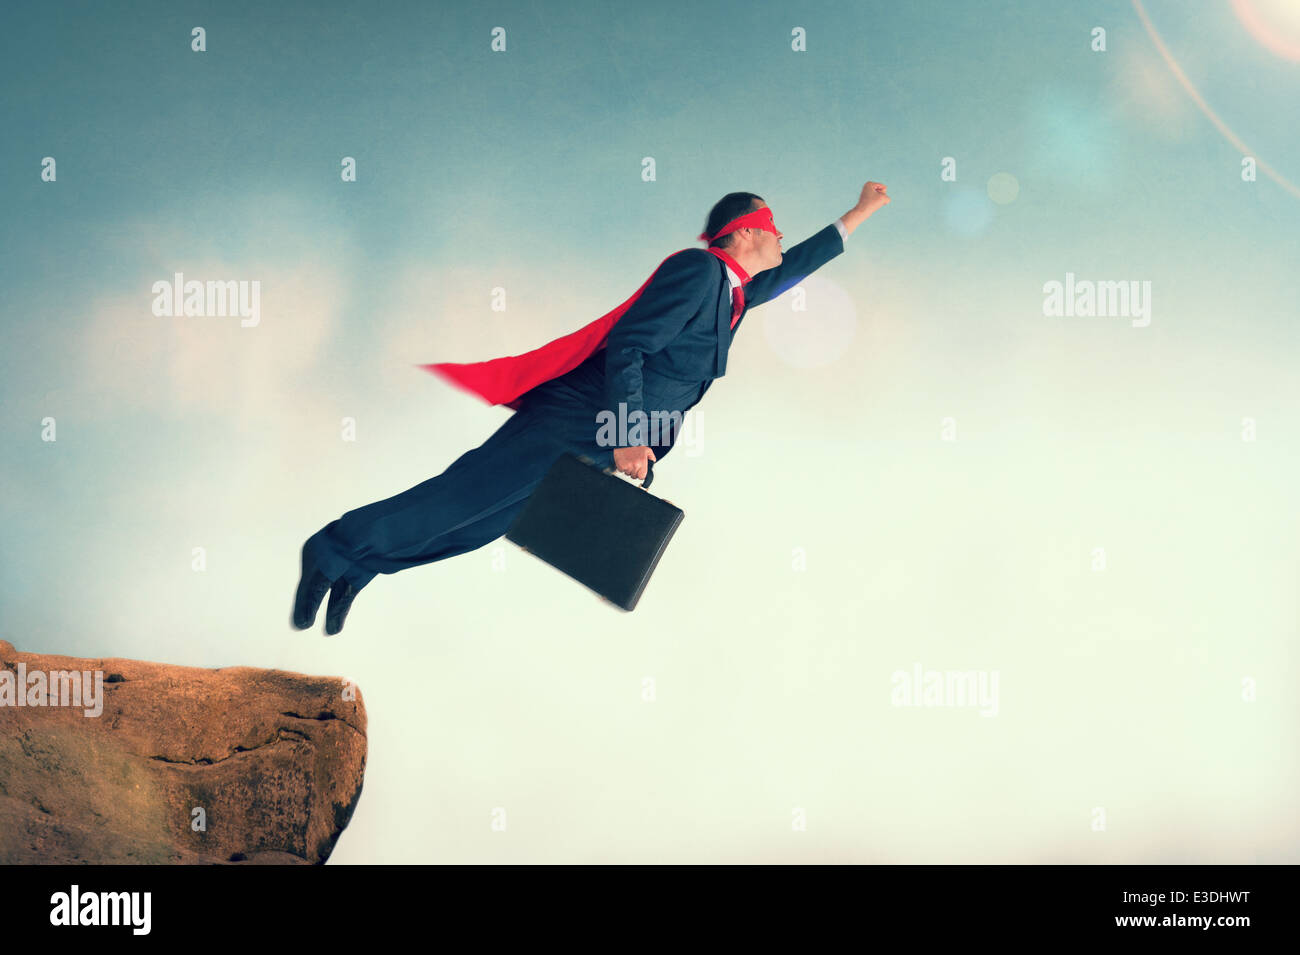 superhero businessman taking off to flight from a cliff ledge wearing a cape and mask - Stock Image